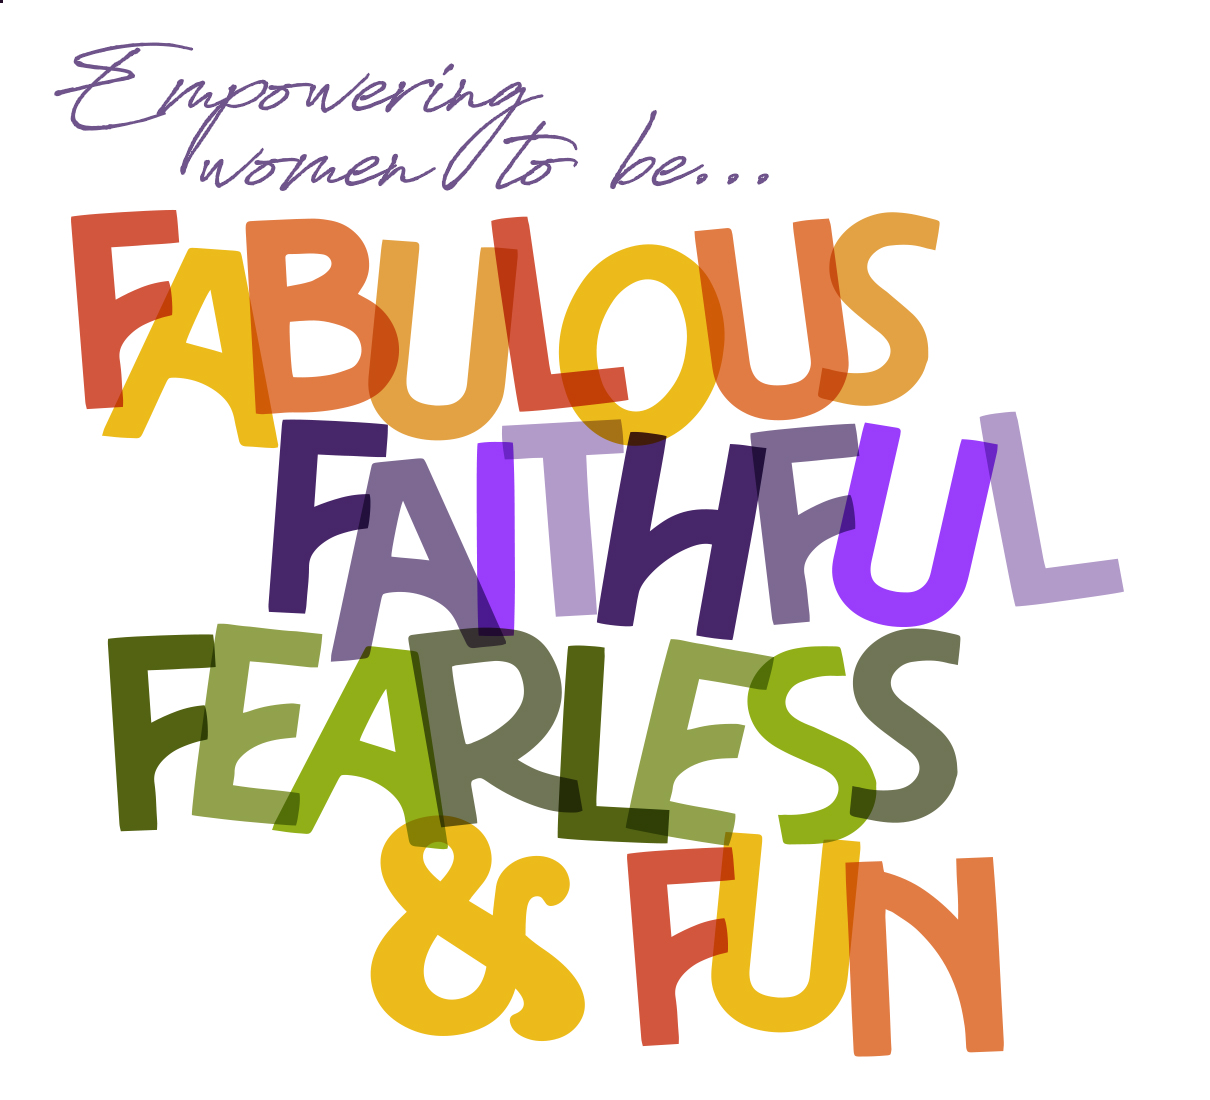 Conference Slogan - Empowering women to be fabulous, faithful, fearless and fun